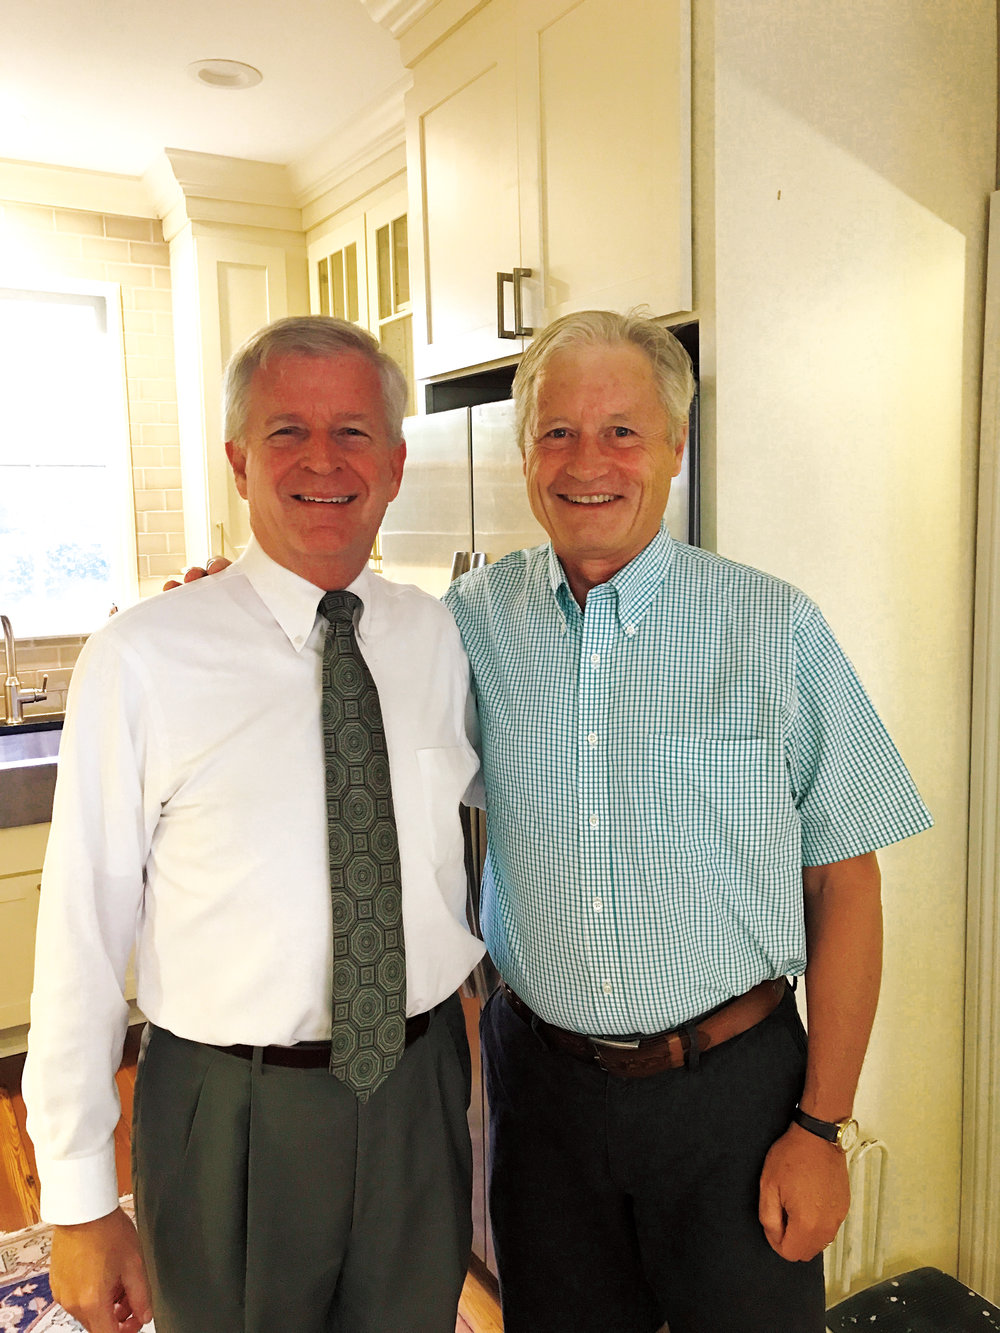 Dawes Cook '72 (l.) hosted Pres Stone '72 during the solar eclipse in August.